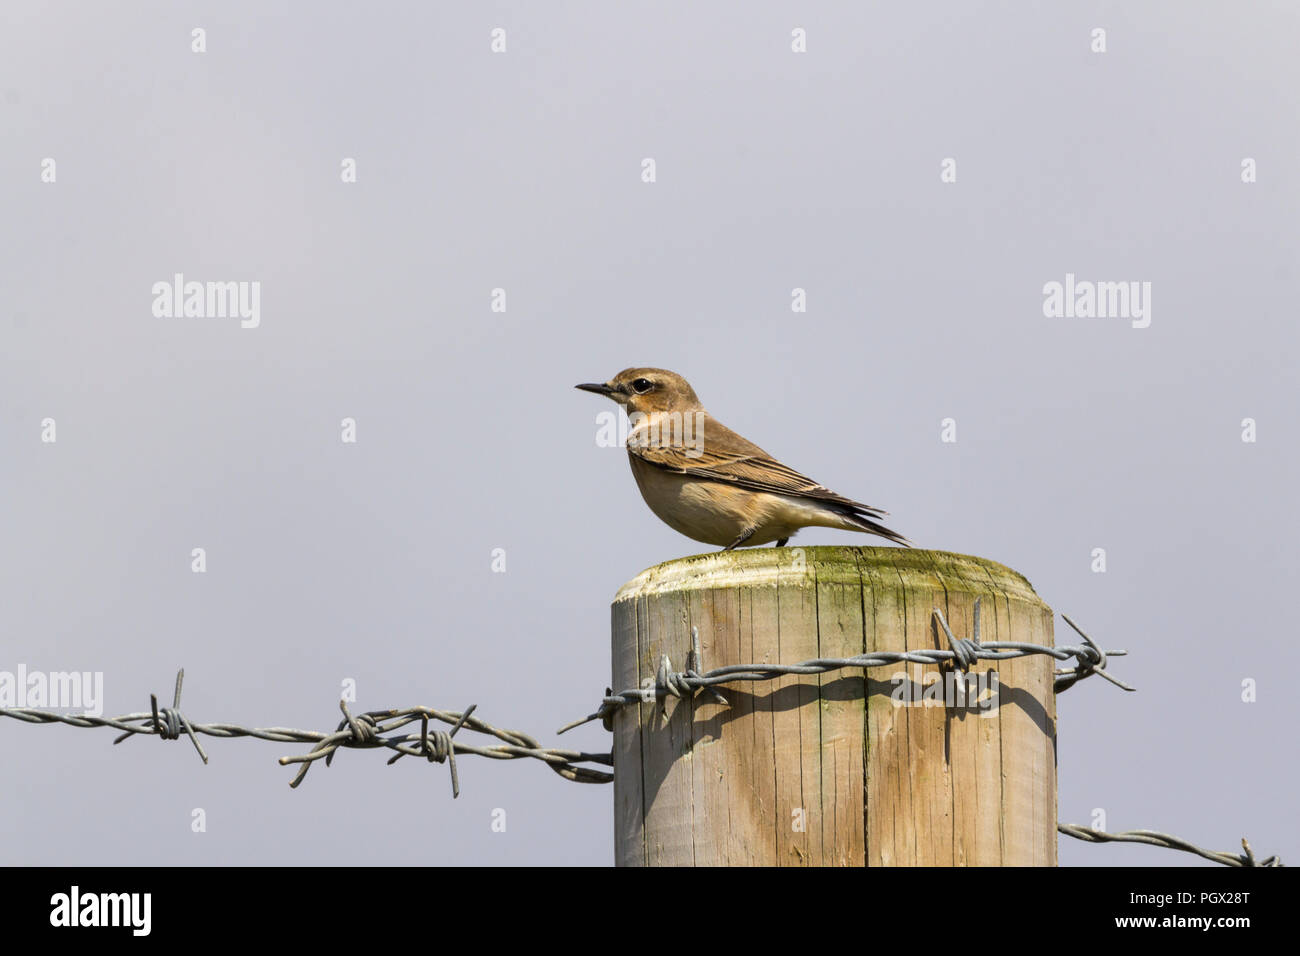 Wheatear (Oenanthe oenanthe) perched on wooden fence post at Seaford UK. A summer migrant with pale stripe over eye female plumage. - Stock Image